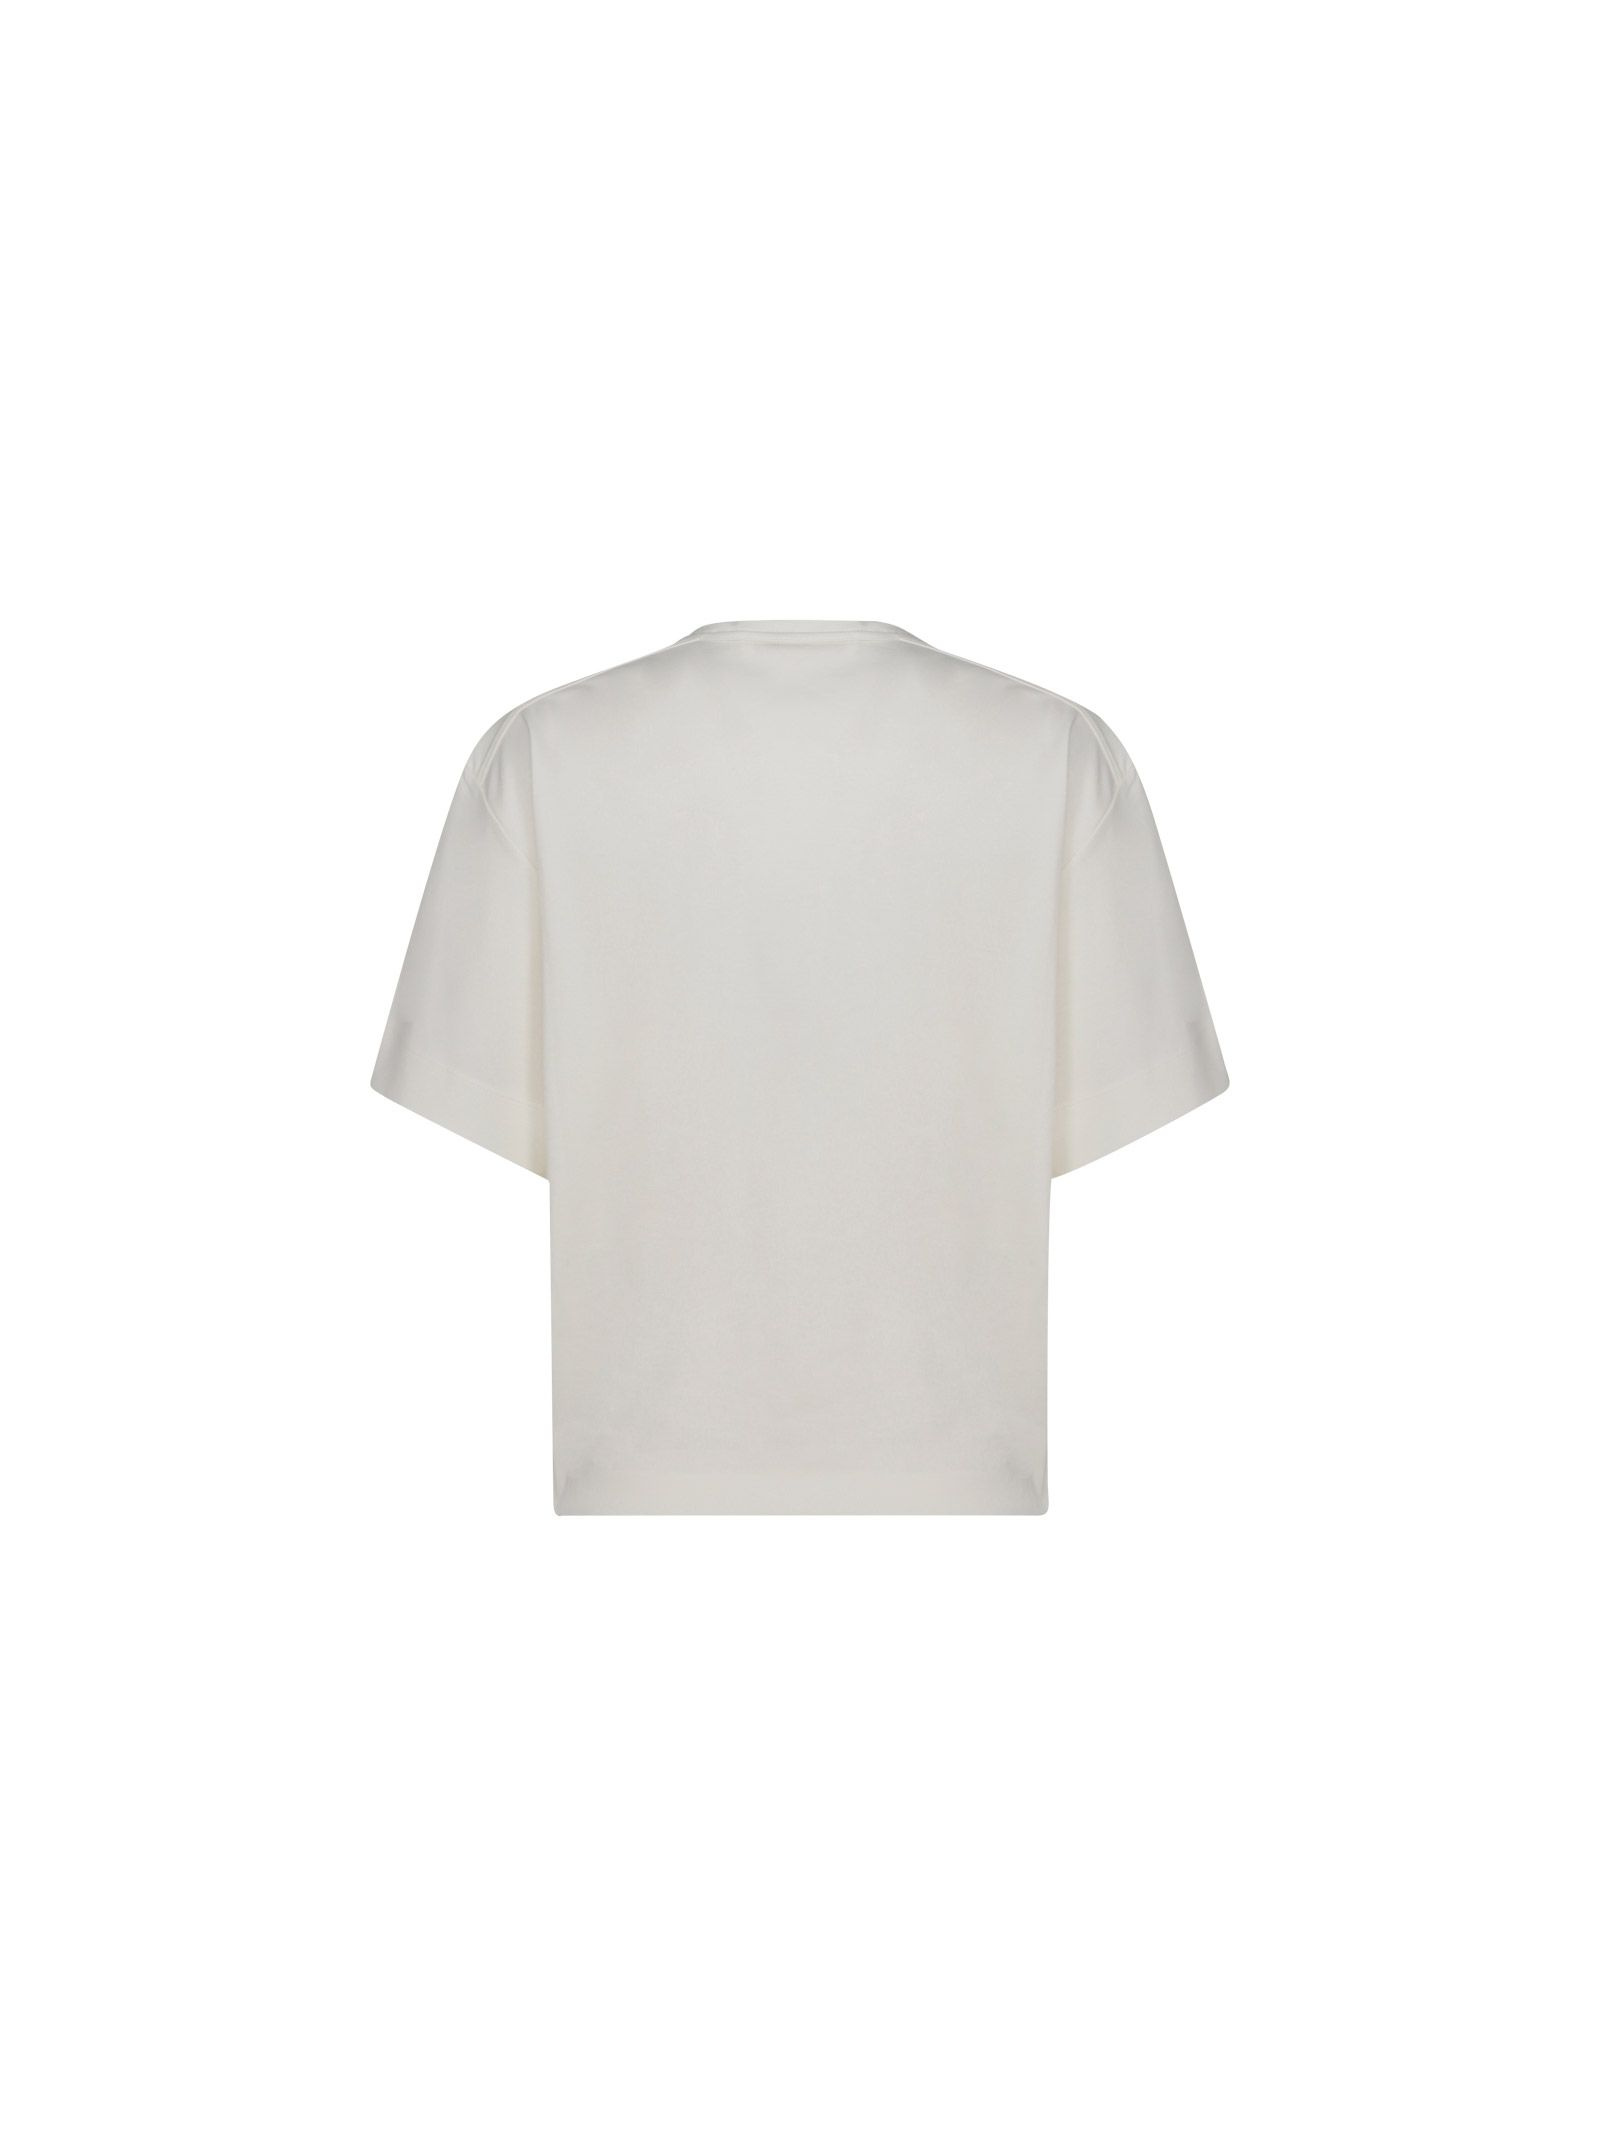 CHLOÉ Cottons CHLOÉ WOMEN'S WHITE COTTON T-SHIRT